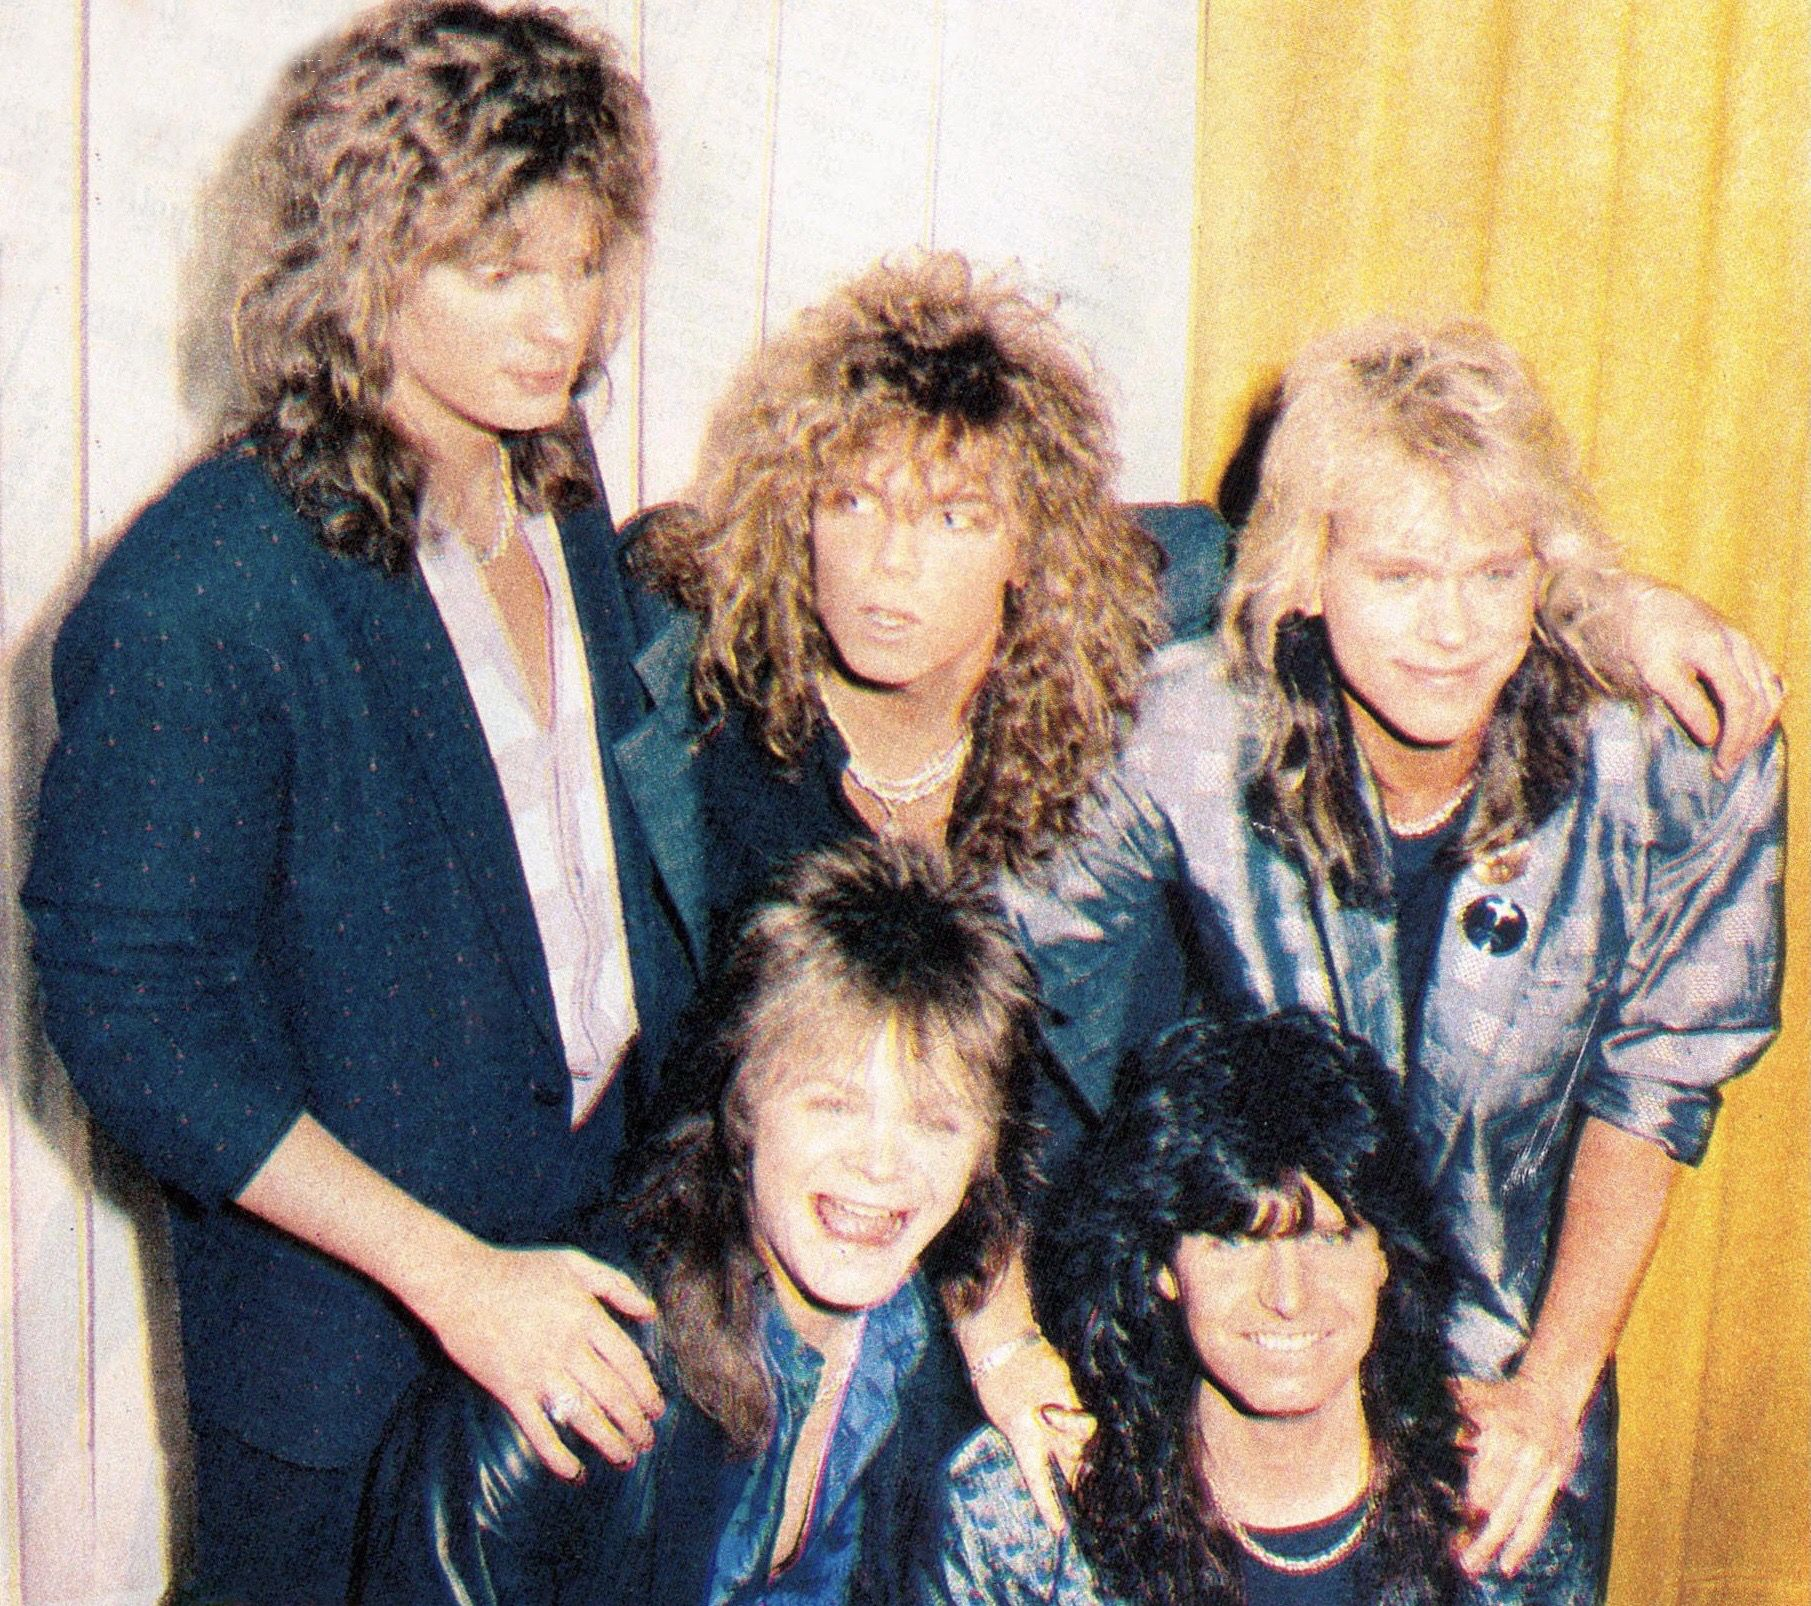 Pin By Starrynight On Europe In Magazines Joey Tempest Photo Couple Photos